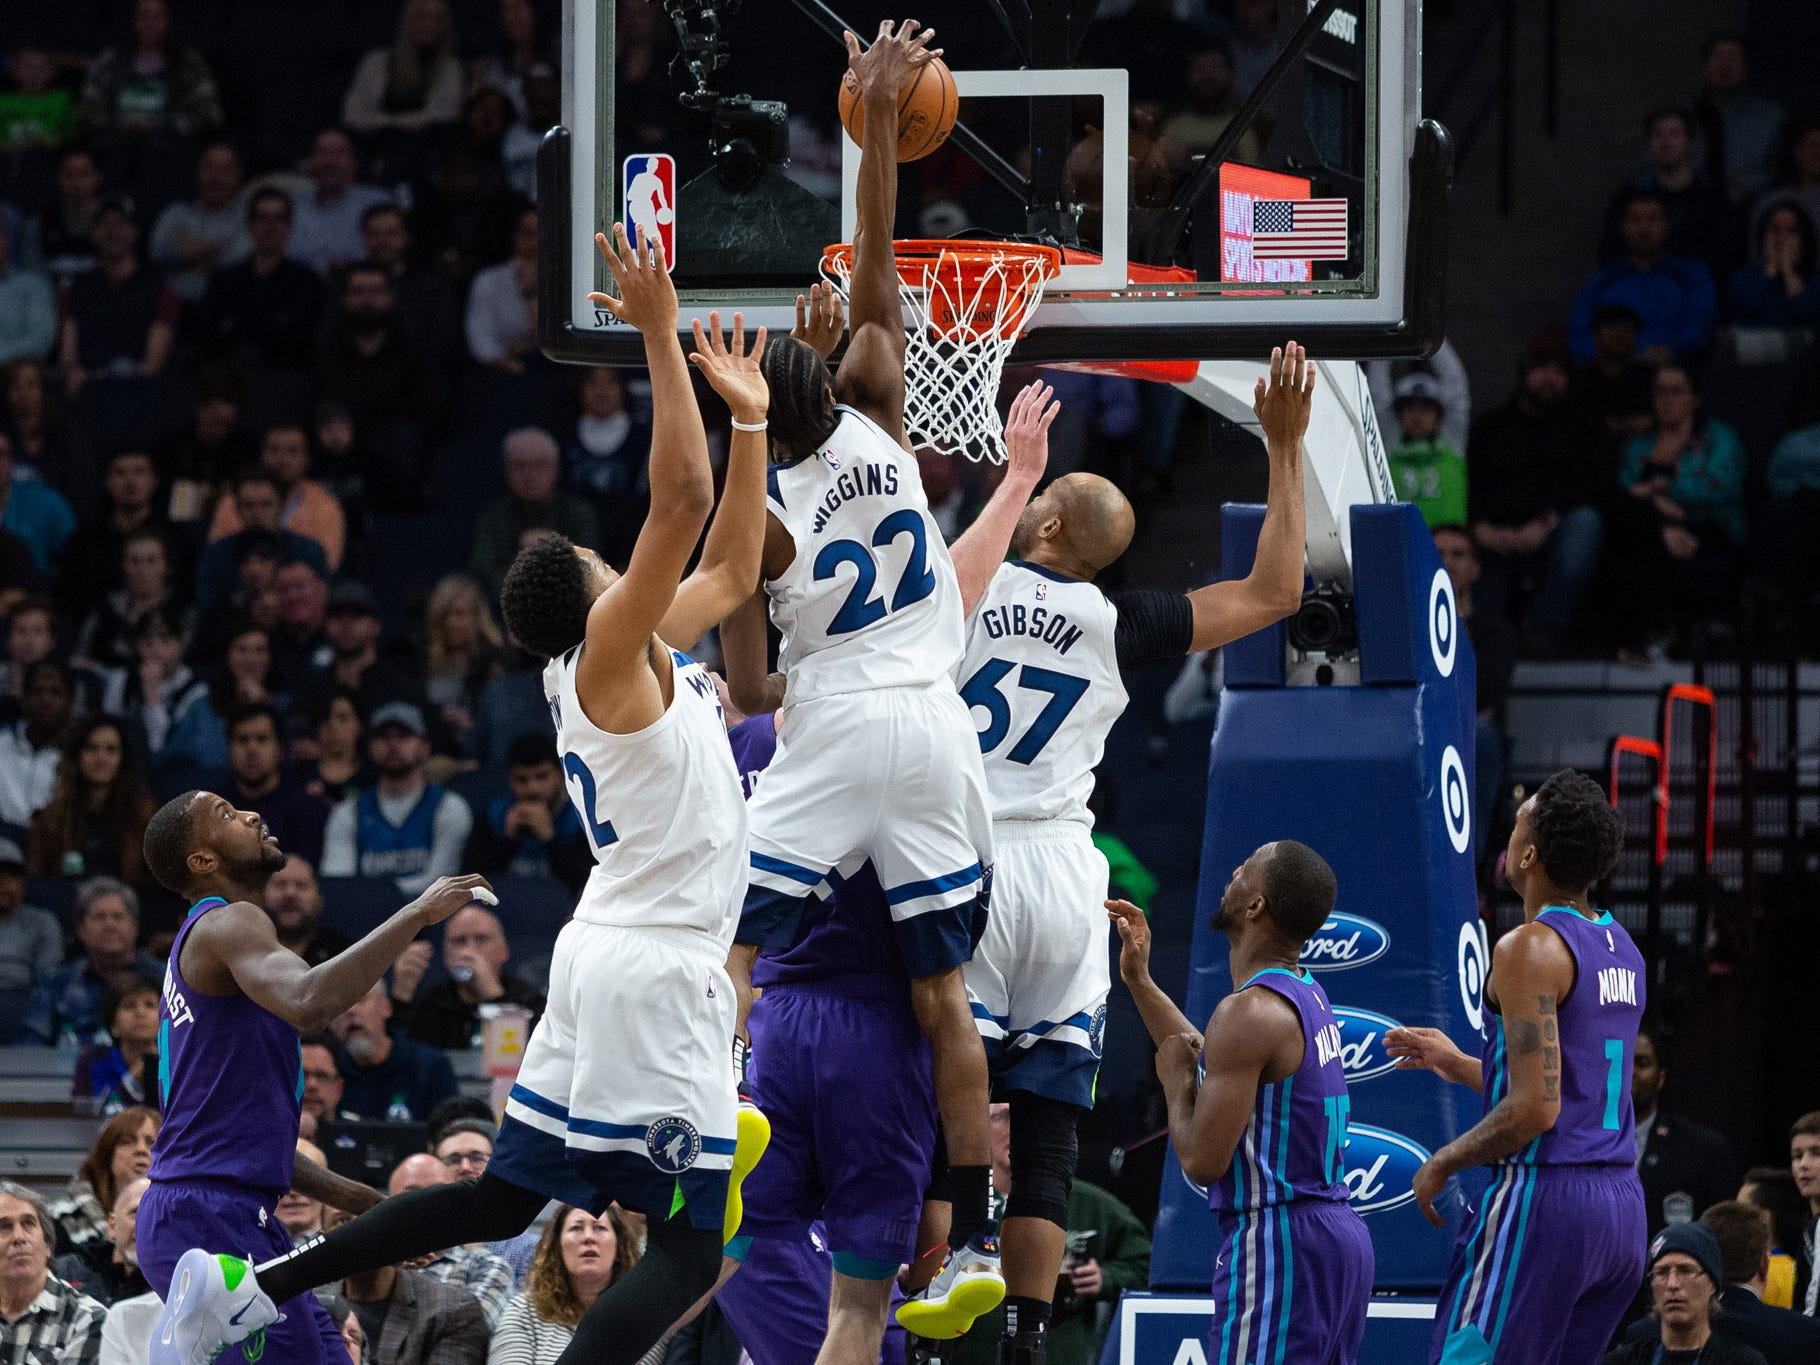 Dec. 5: Timberwolves forward Andrew Wiggins dunks the ball during the second quarter against the Hornets.